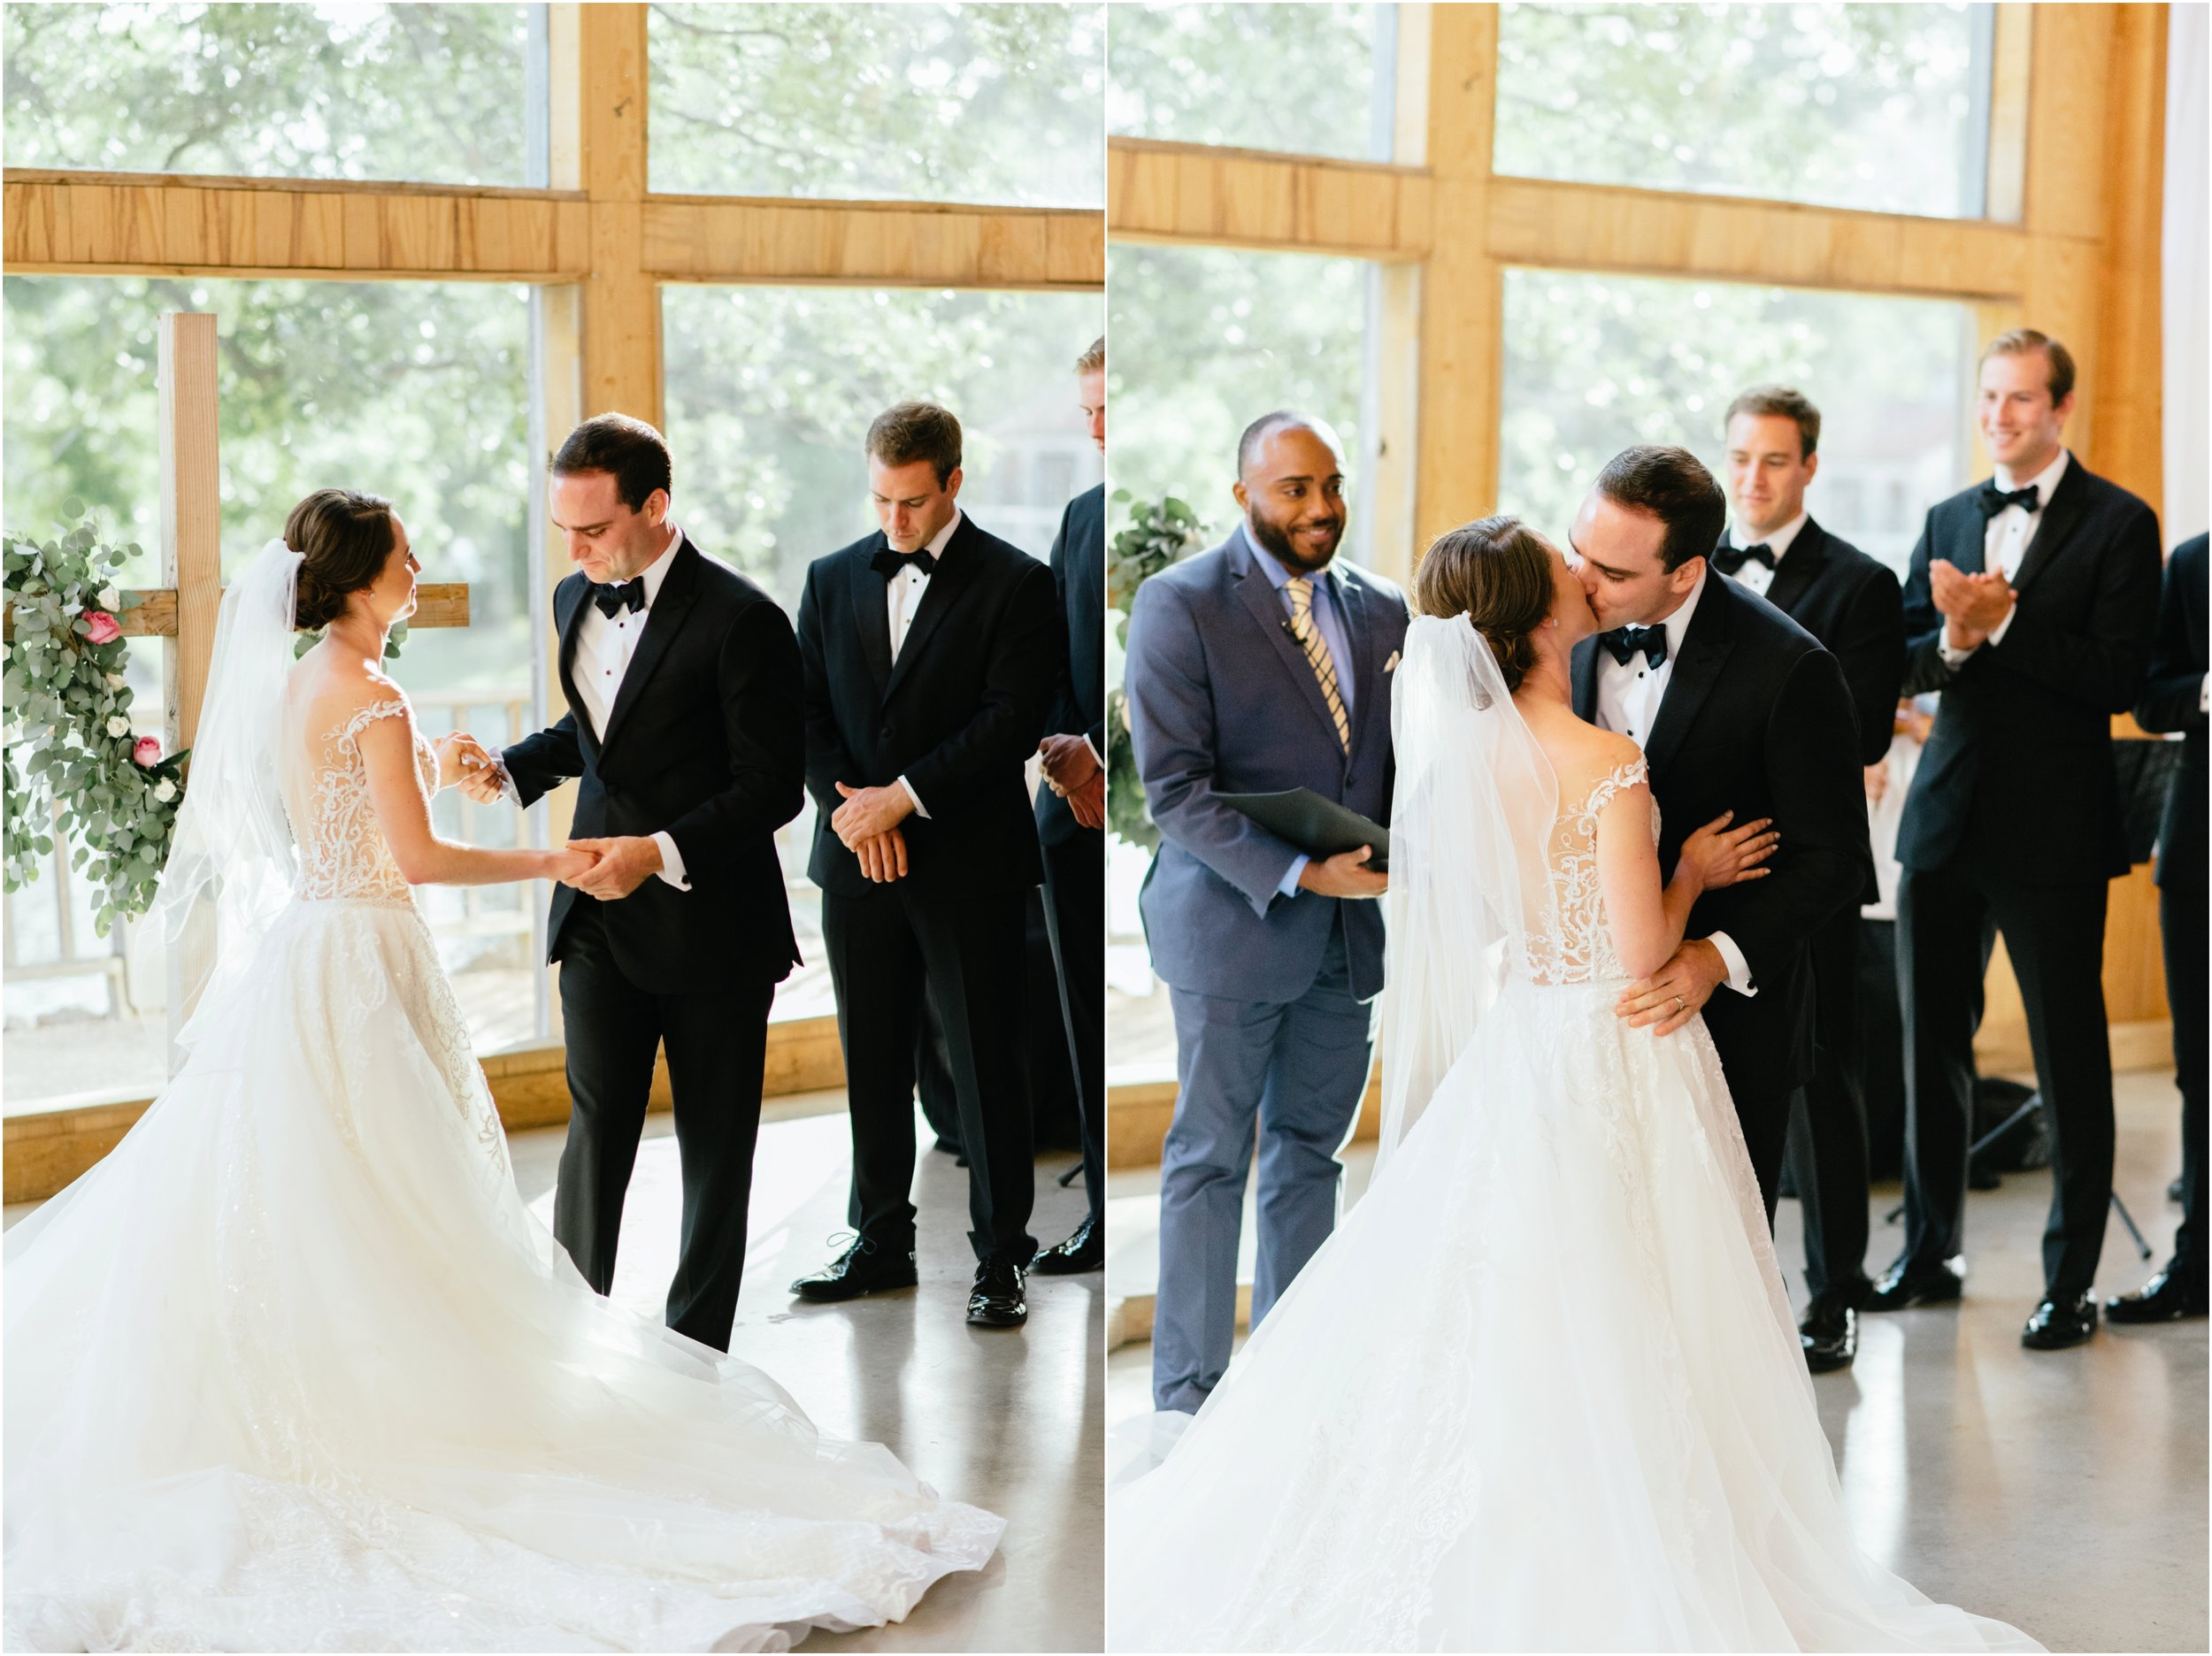 dallasweddingphotographer_fortworthweddingphotographer_texasweddingphotographer_mattandjulieweddings_whiterocklakewedding_KayleighClay_0025.jpg